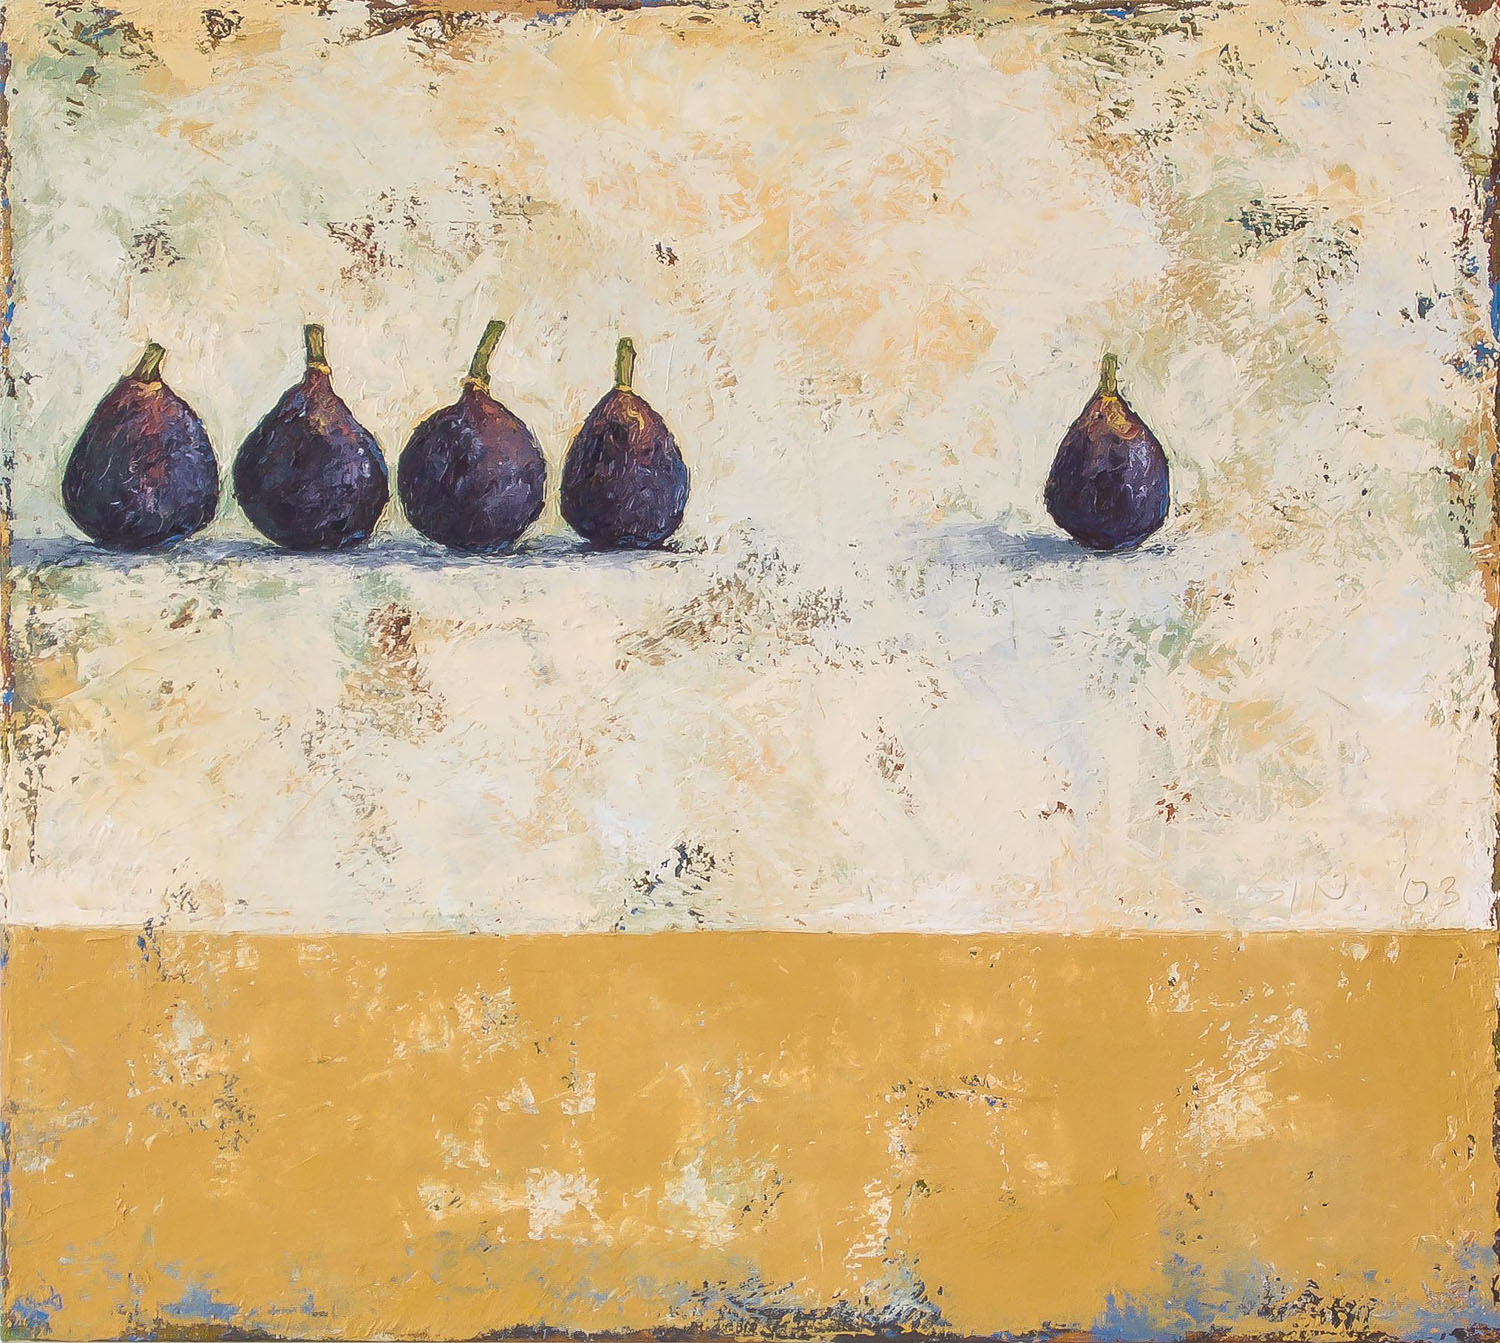 Figs in a Row  2003 oil on panel 18 x 20 inches  Private collection